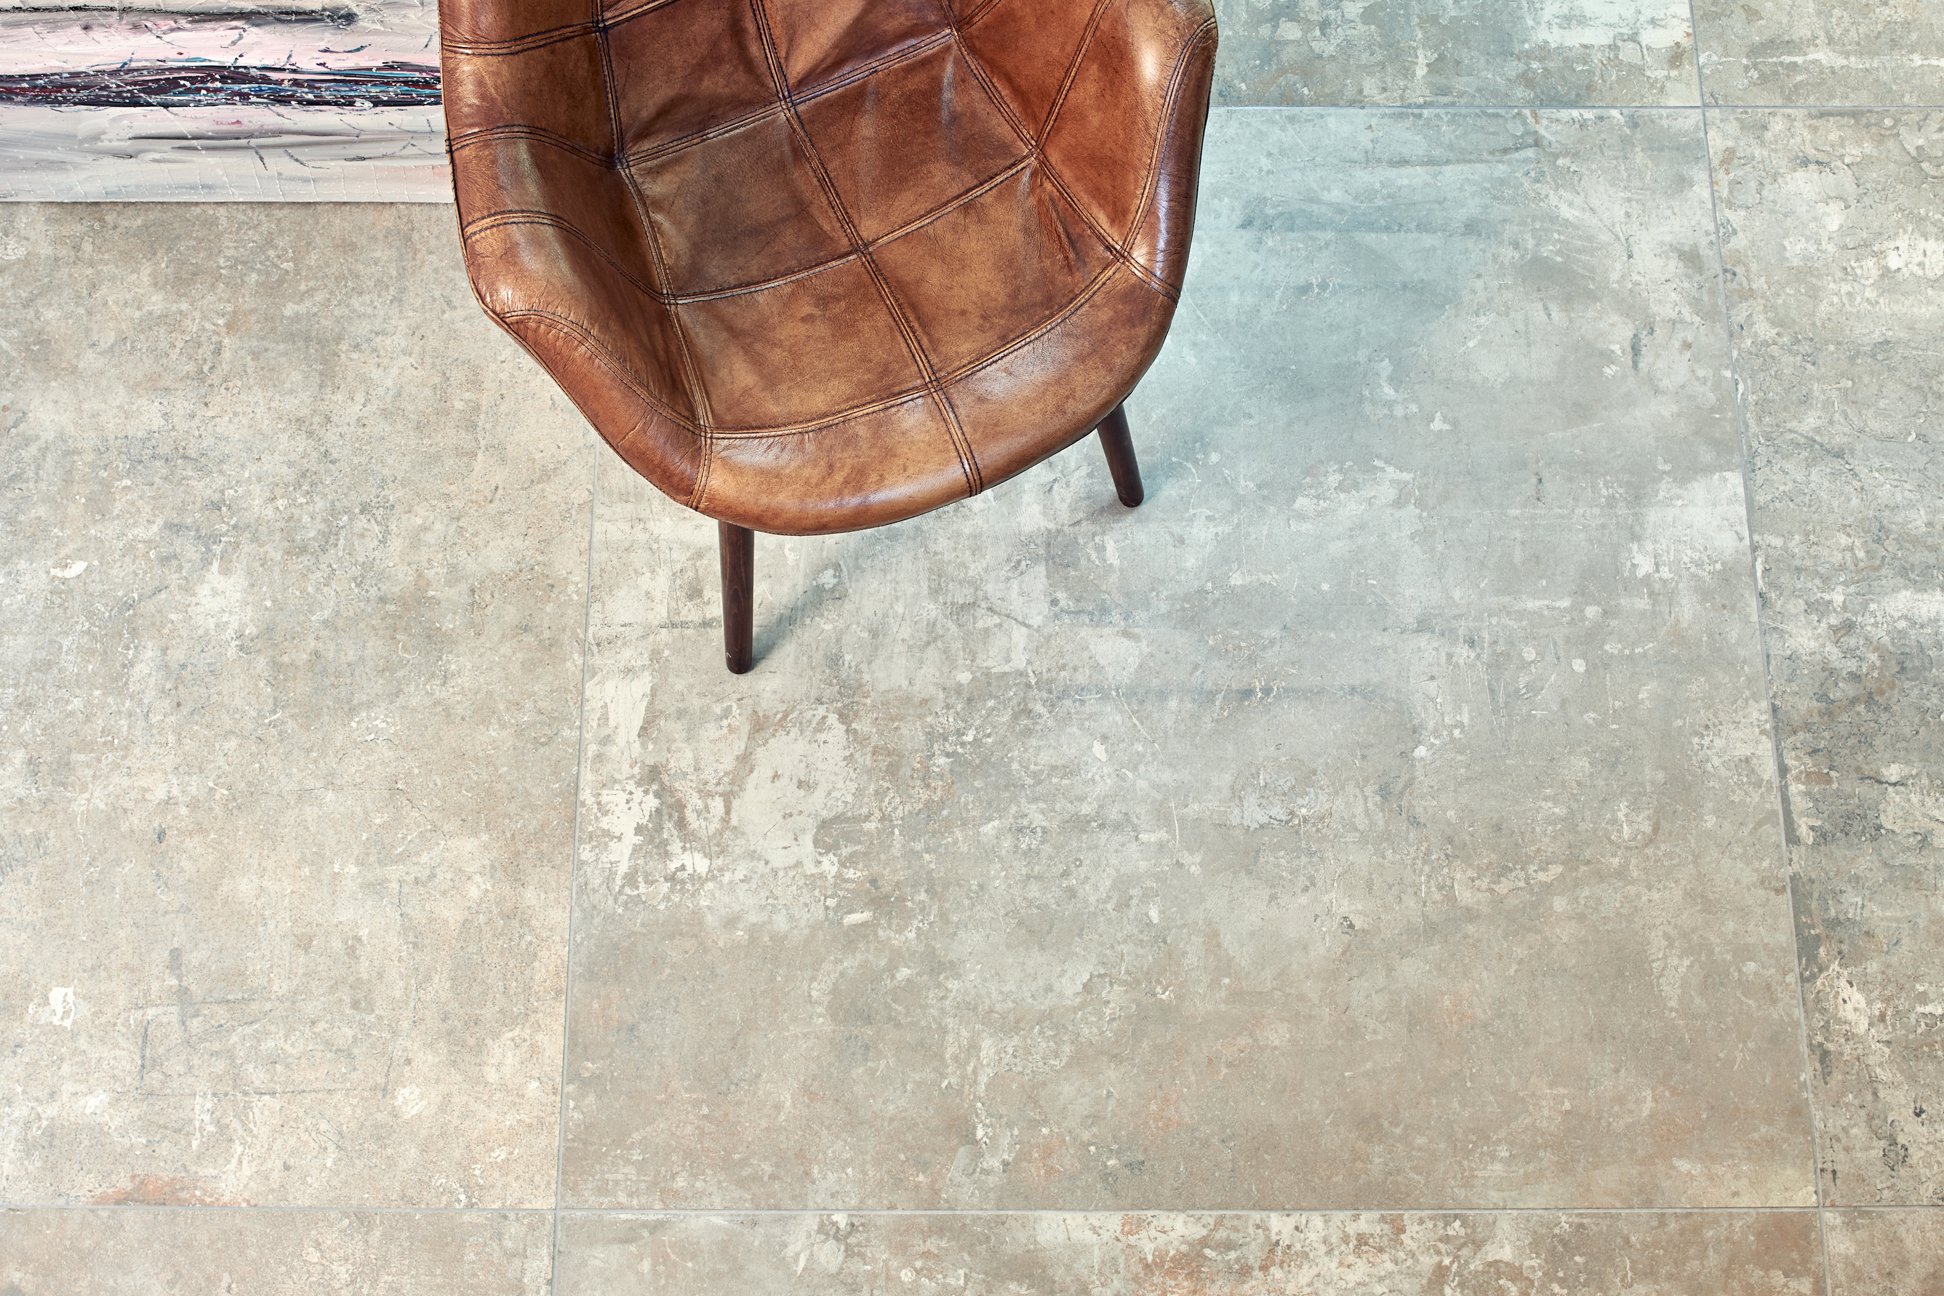 porcelain tile images: Temptation range high quality photo